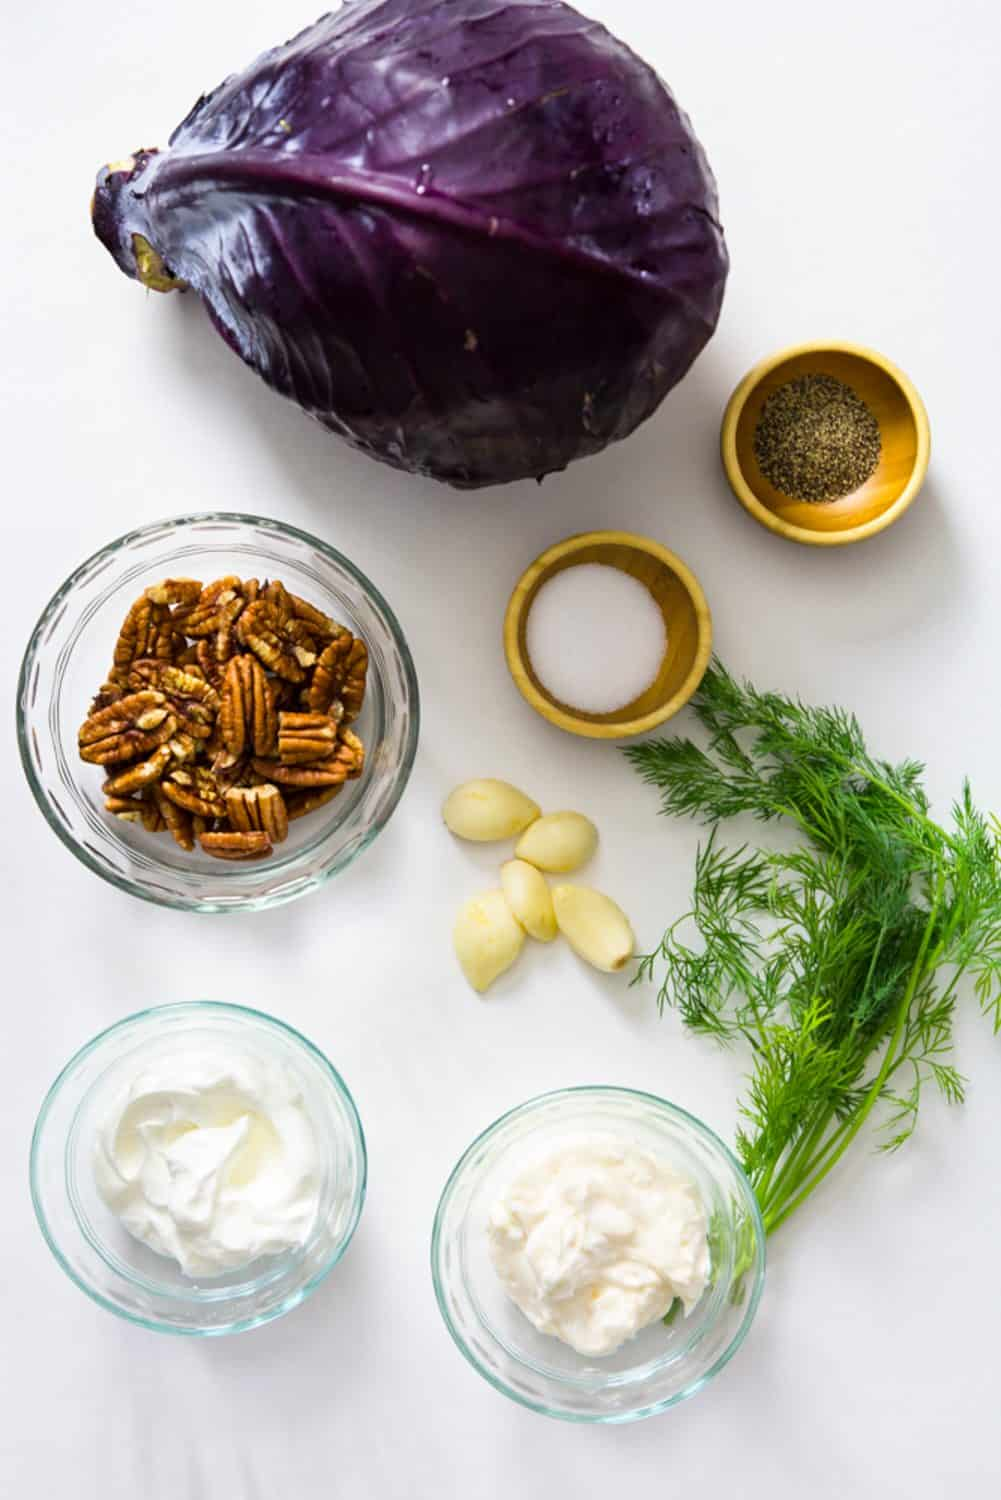 Red Cabbage Salad ingredients - Mayo, sour cream, pecans, salt, pepper, garlic, fresh dill, red cabbage